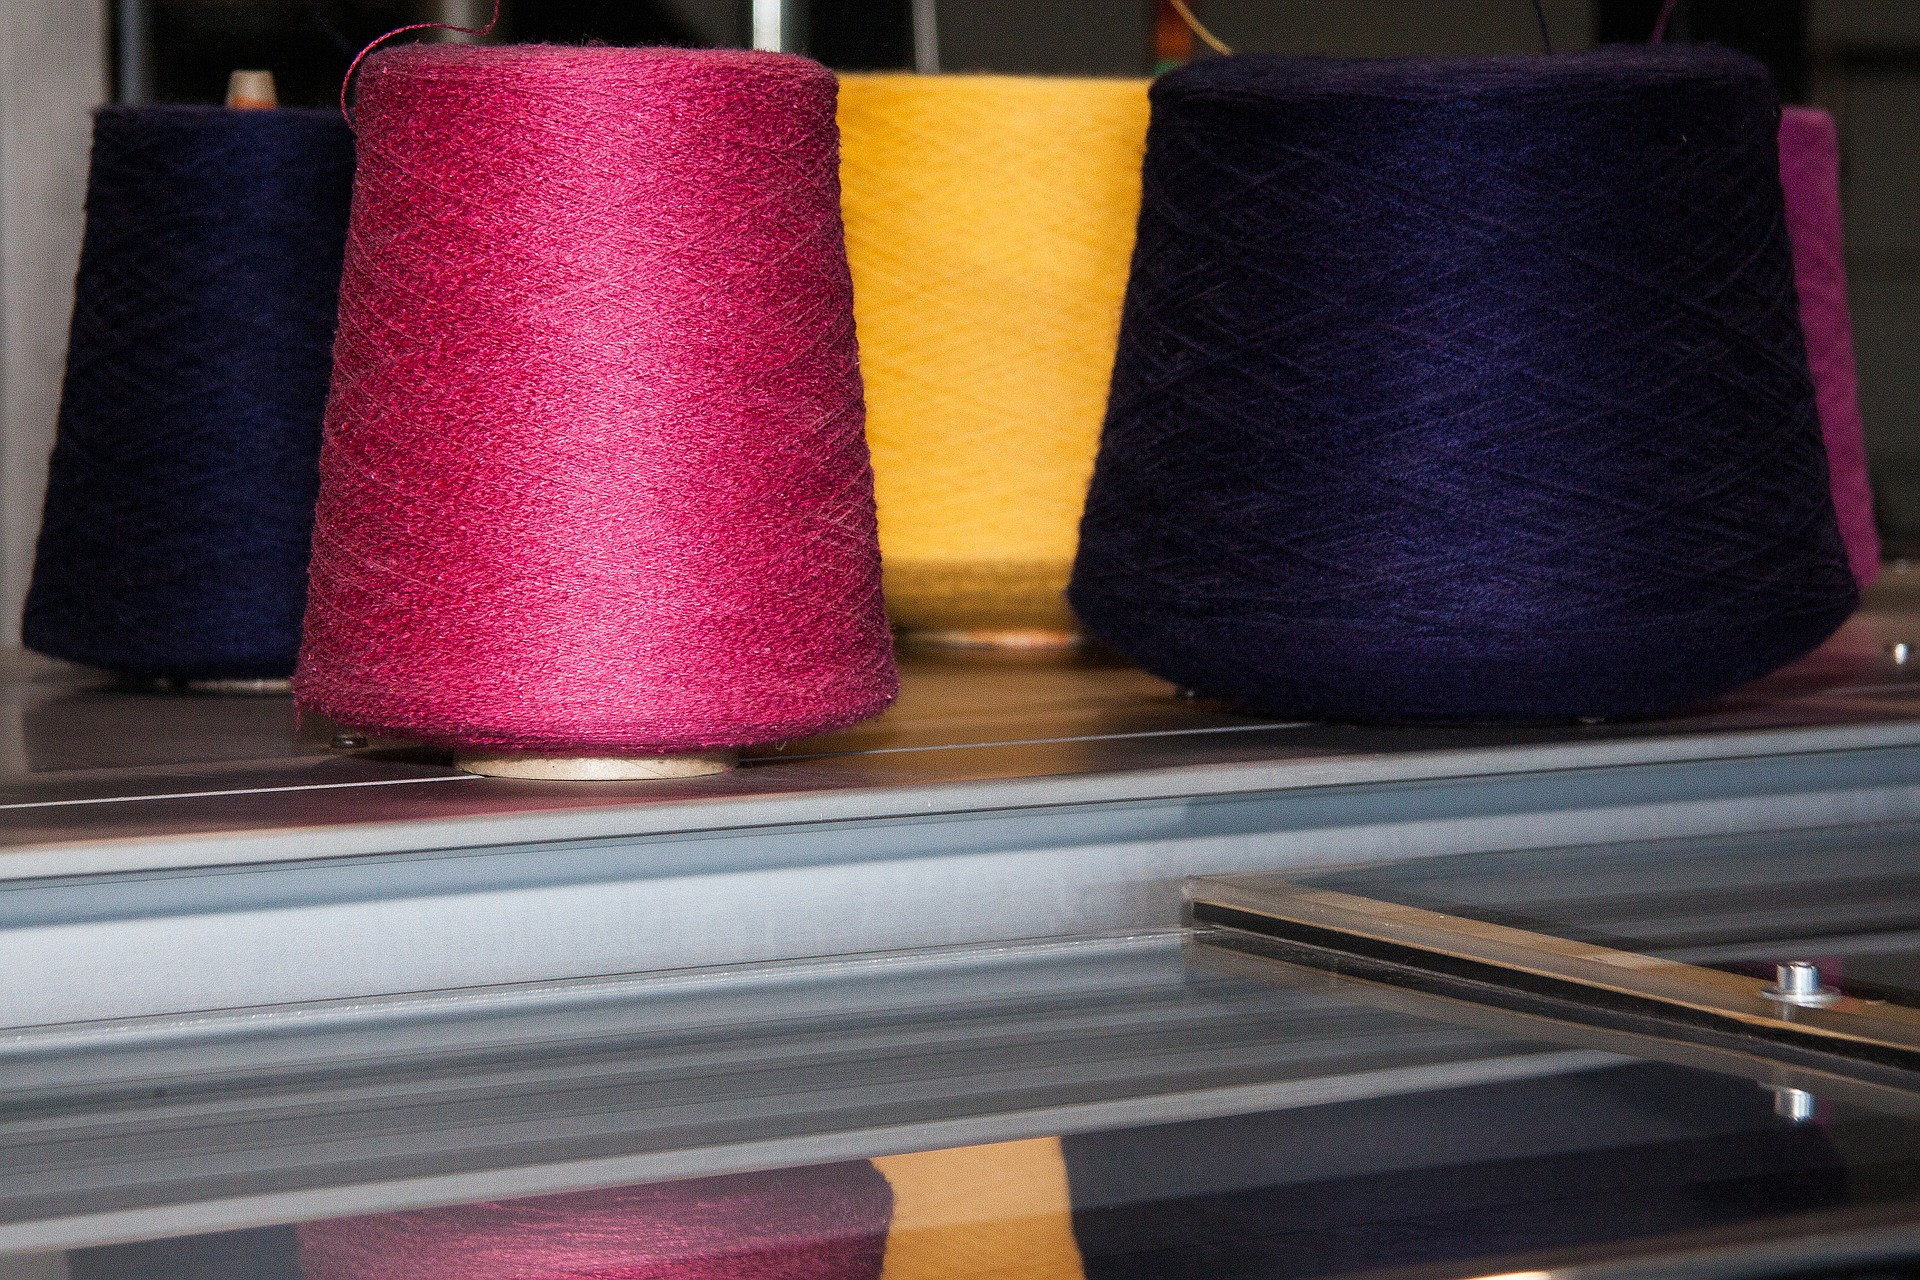 Thread Coil, Coil, Colorful, Object, Sew, HQ Photo